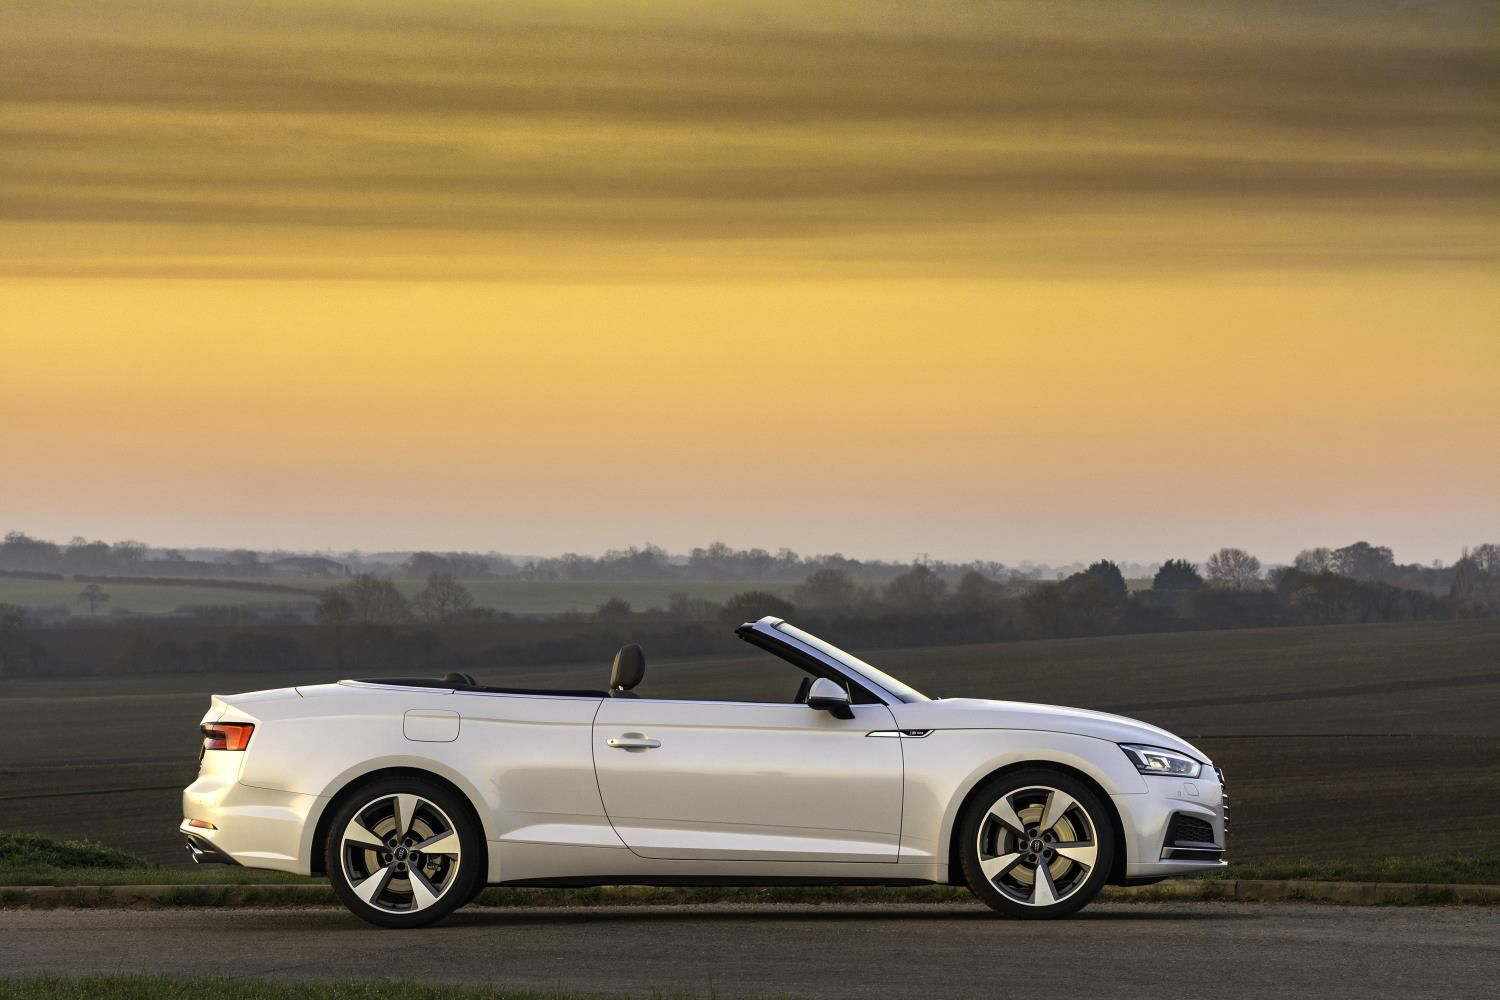 White Audi A5 Cabriolet viewes side on with a beautiful subset behind it.